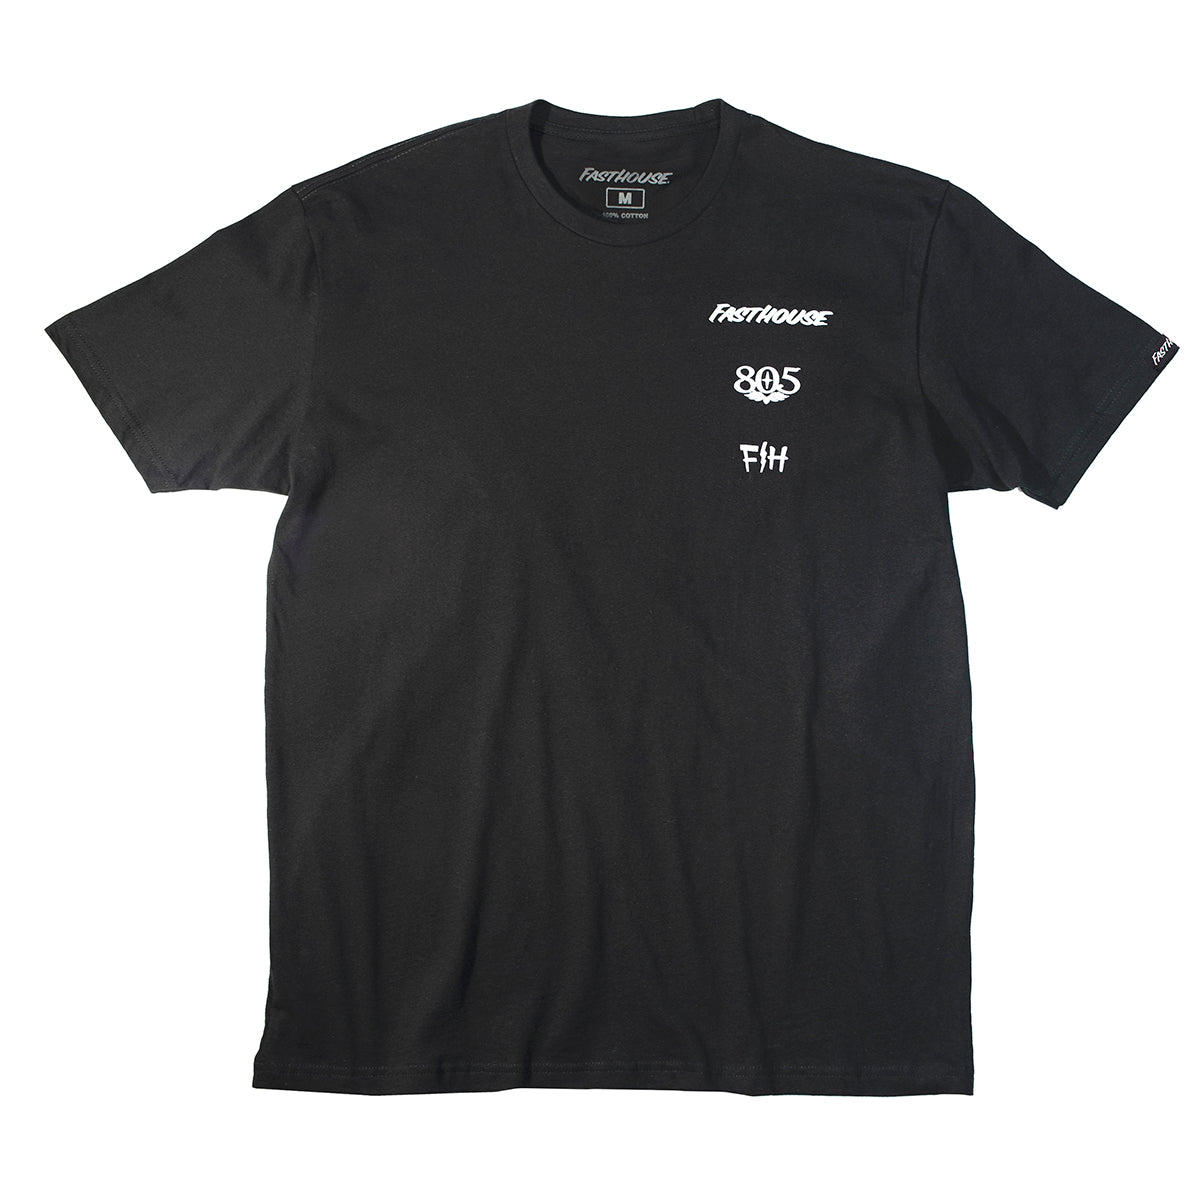 Fasthouse - 805 Prime Tee - Black